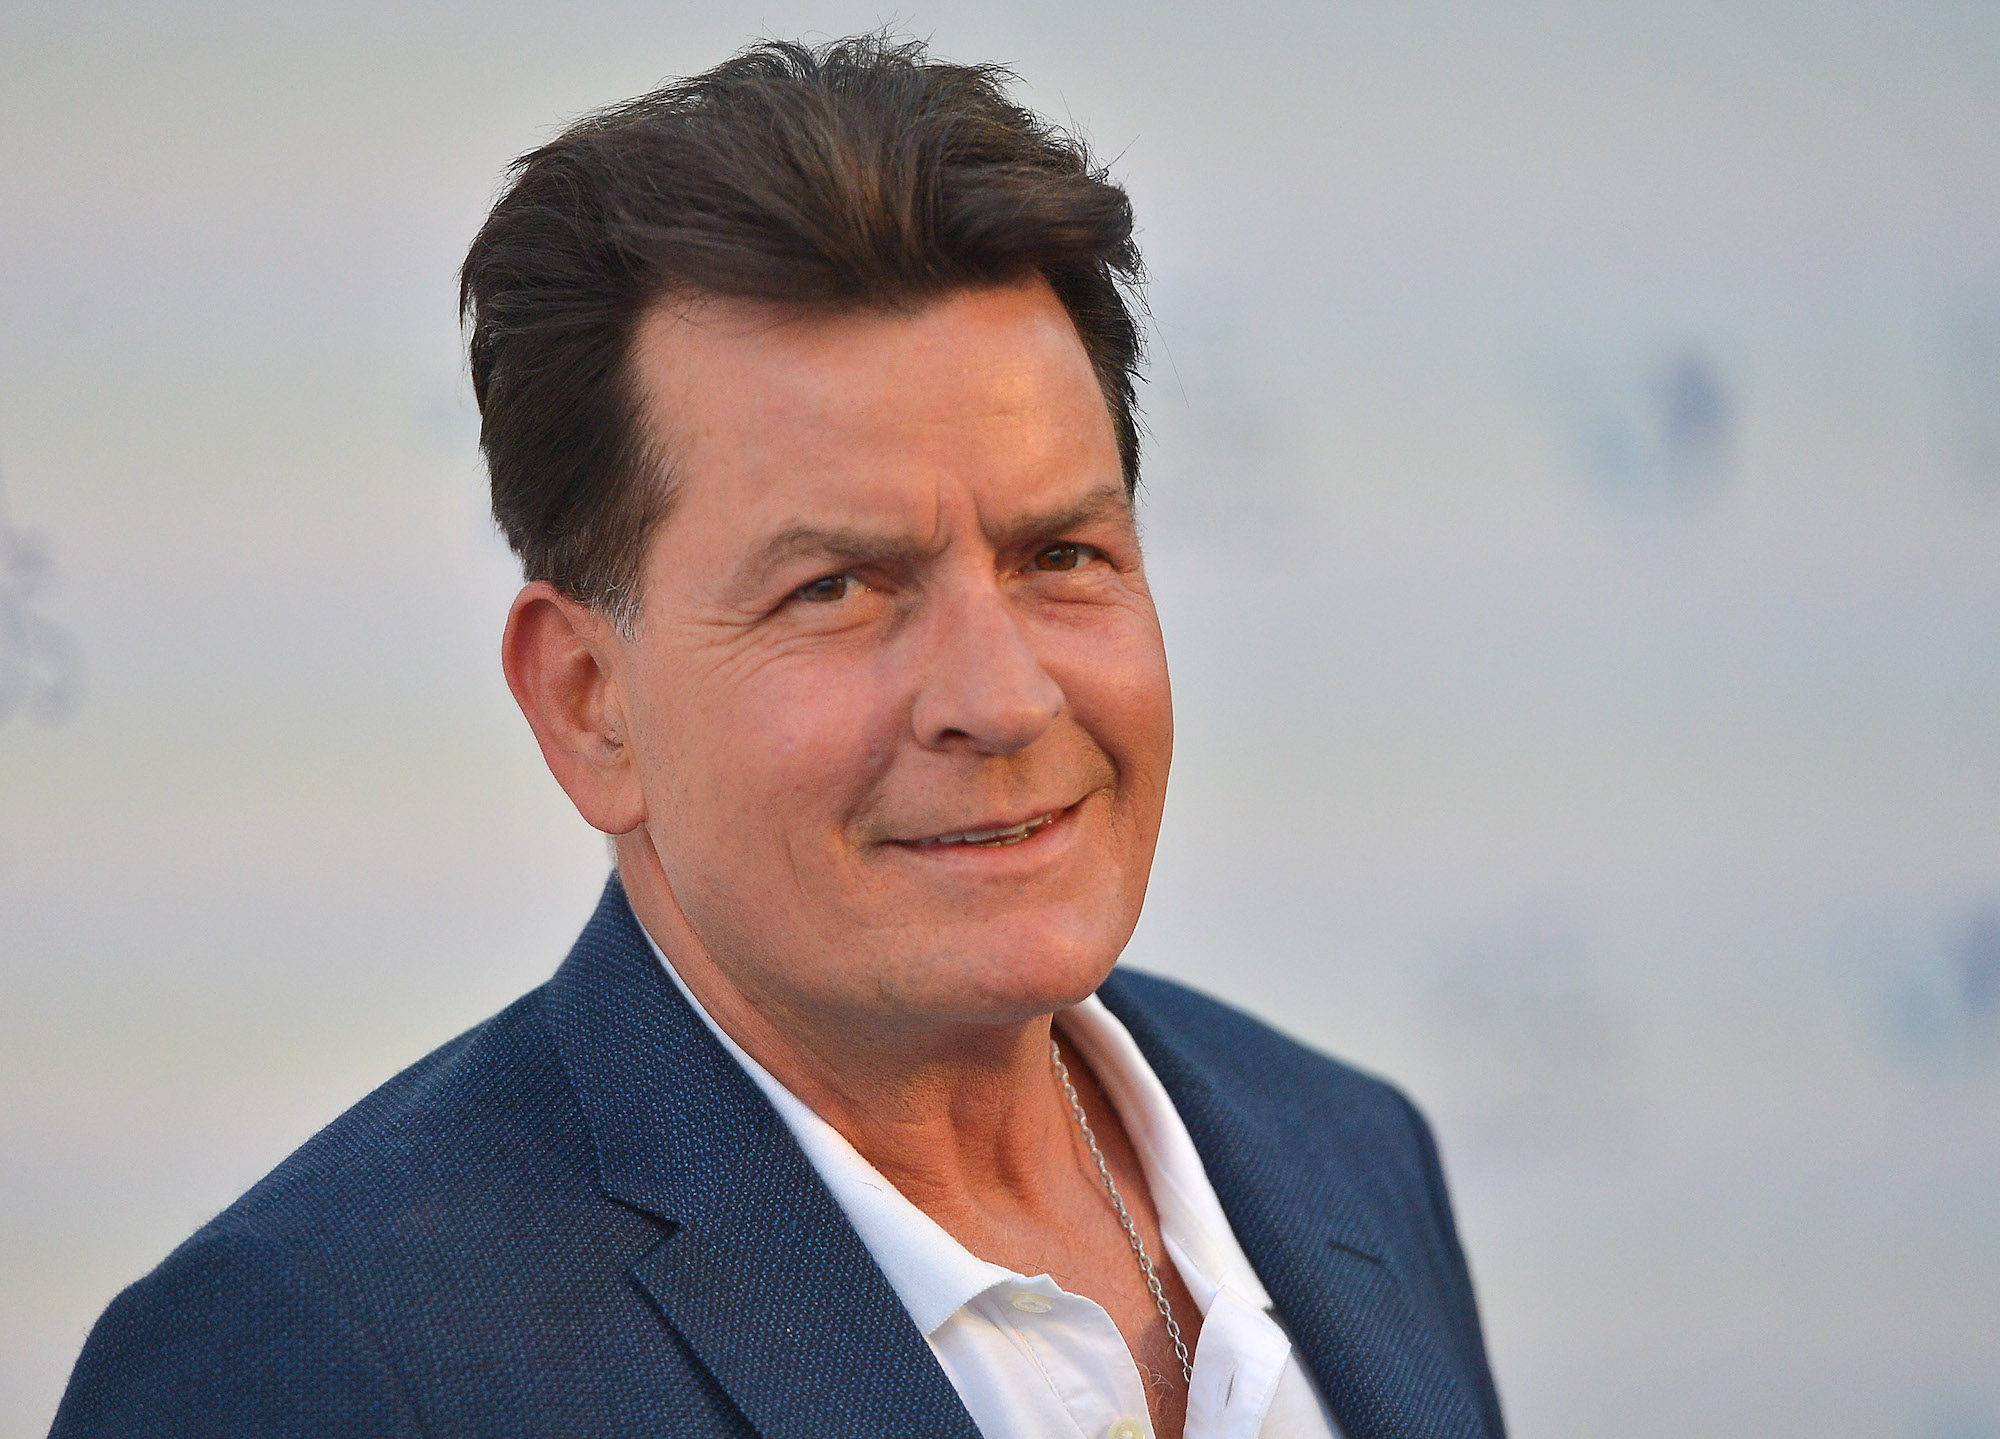 Charlie Sheen Is Banned From NYC's Plaza Hotel For His Naked Outburst